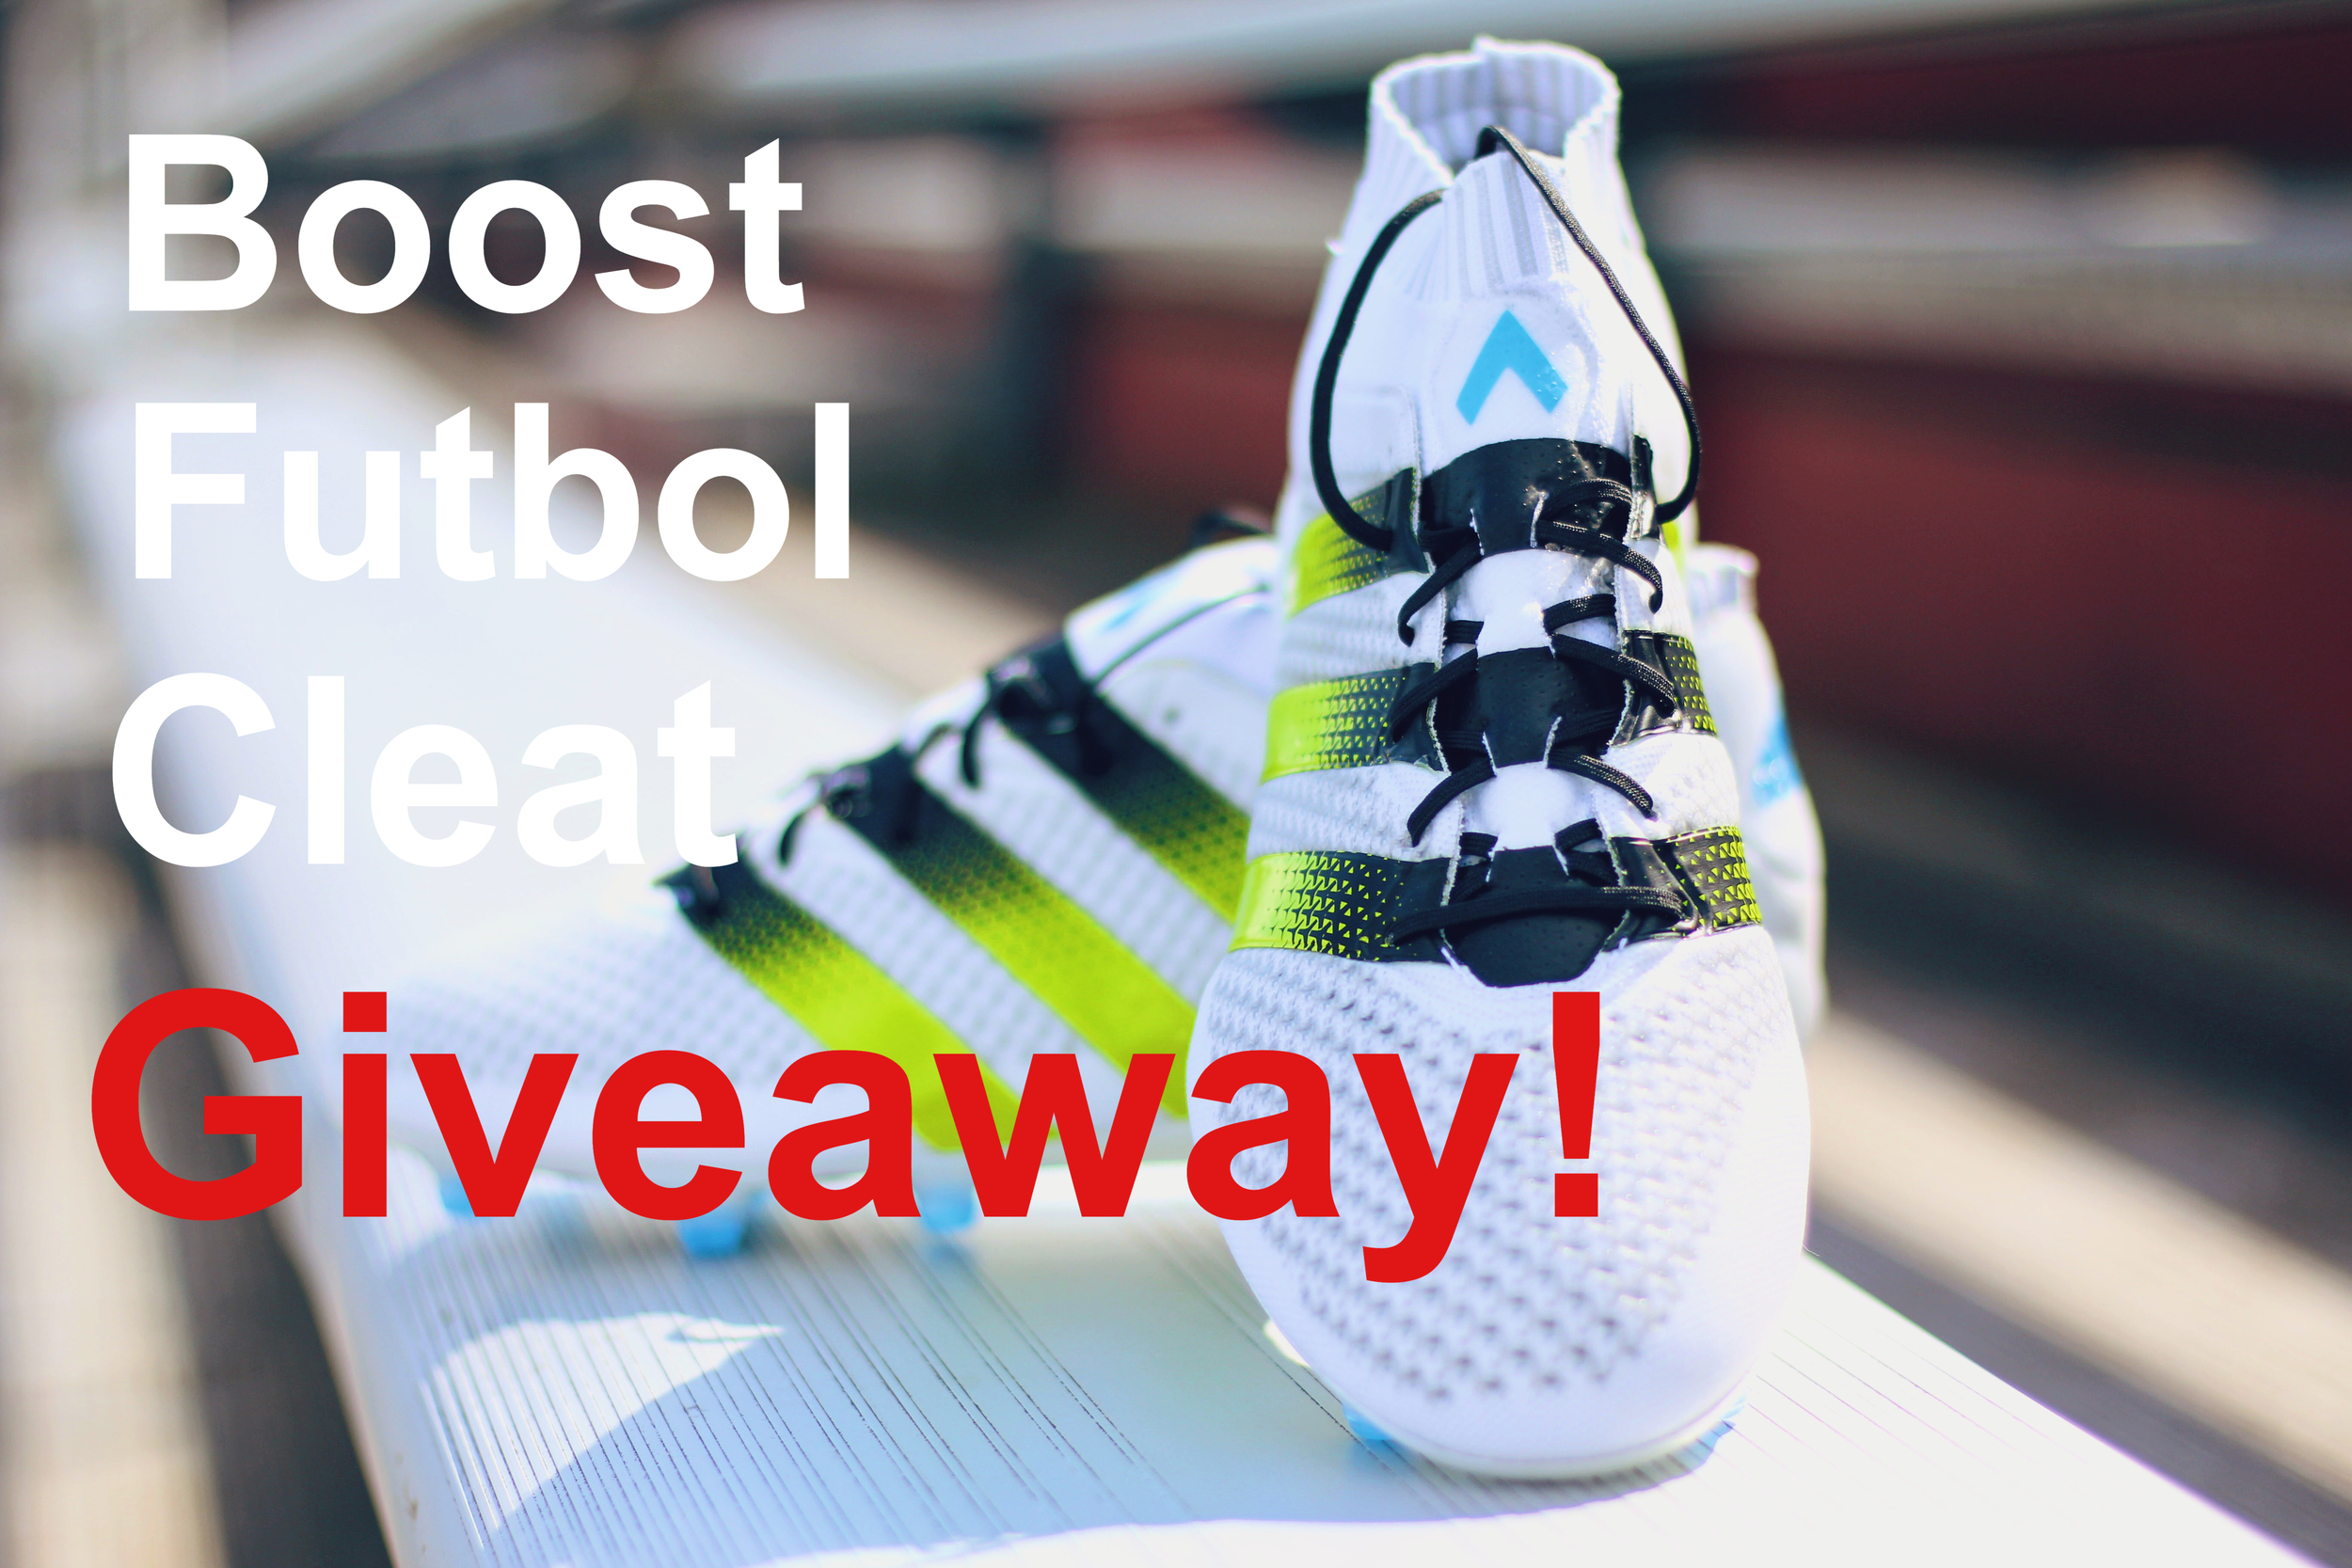 One lucky winner will get these cleats for FREE!